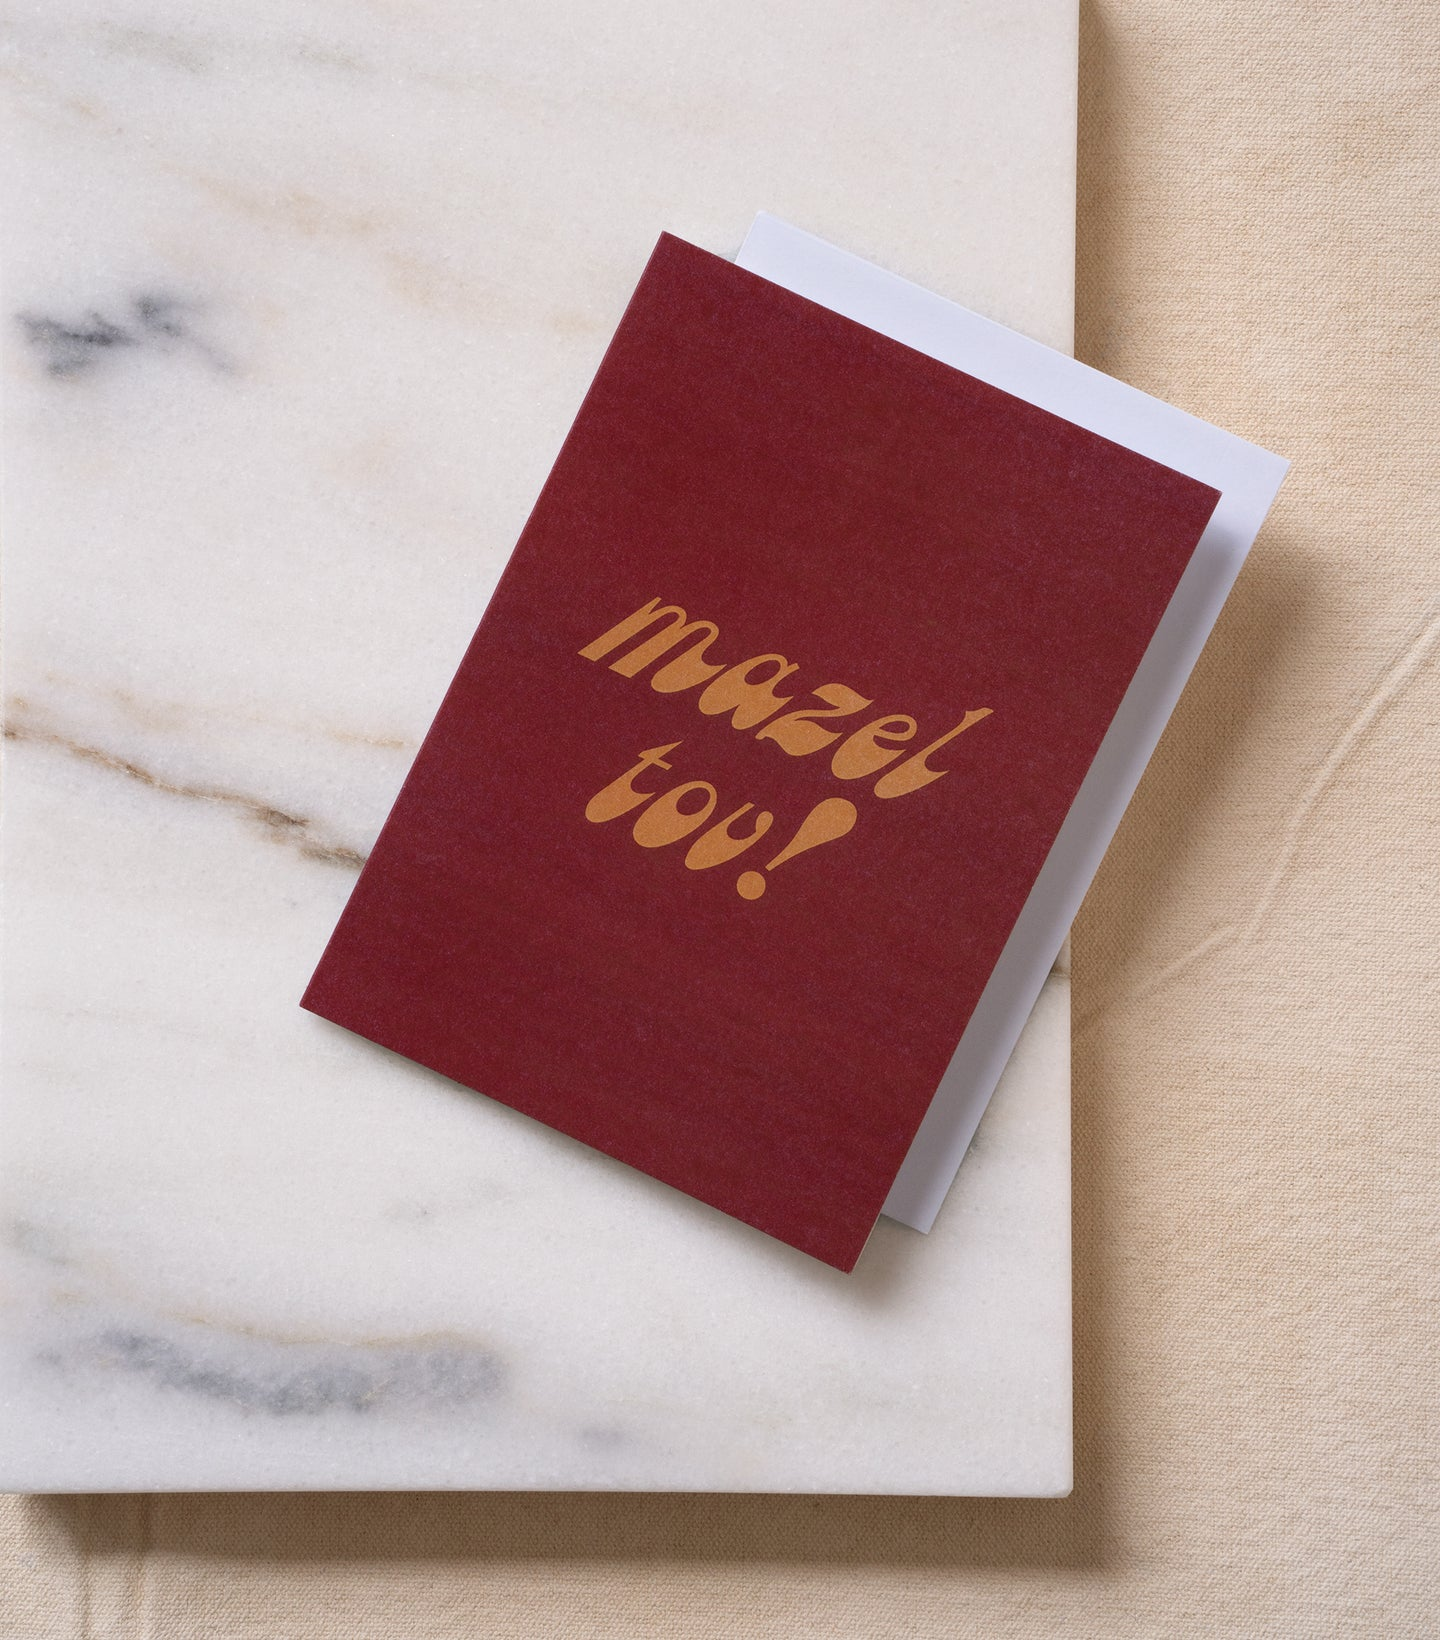 Load image into Gallery viewer, Mazel tov! greeting card with white envelope